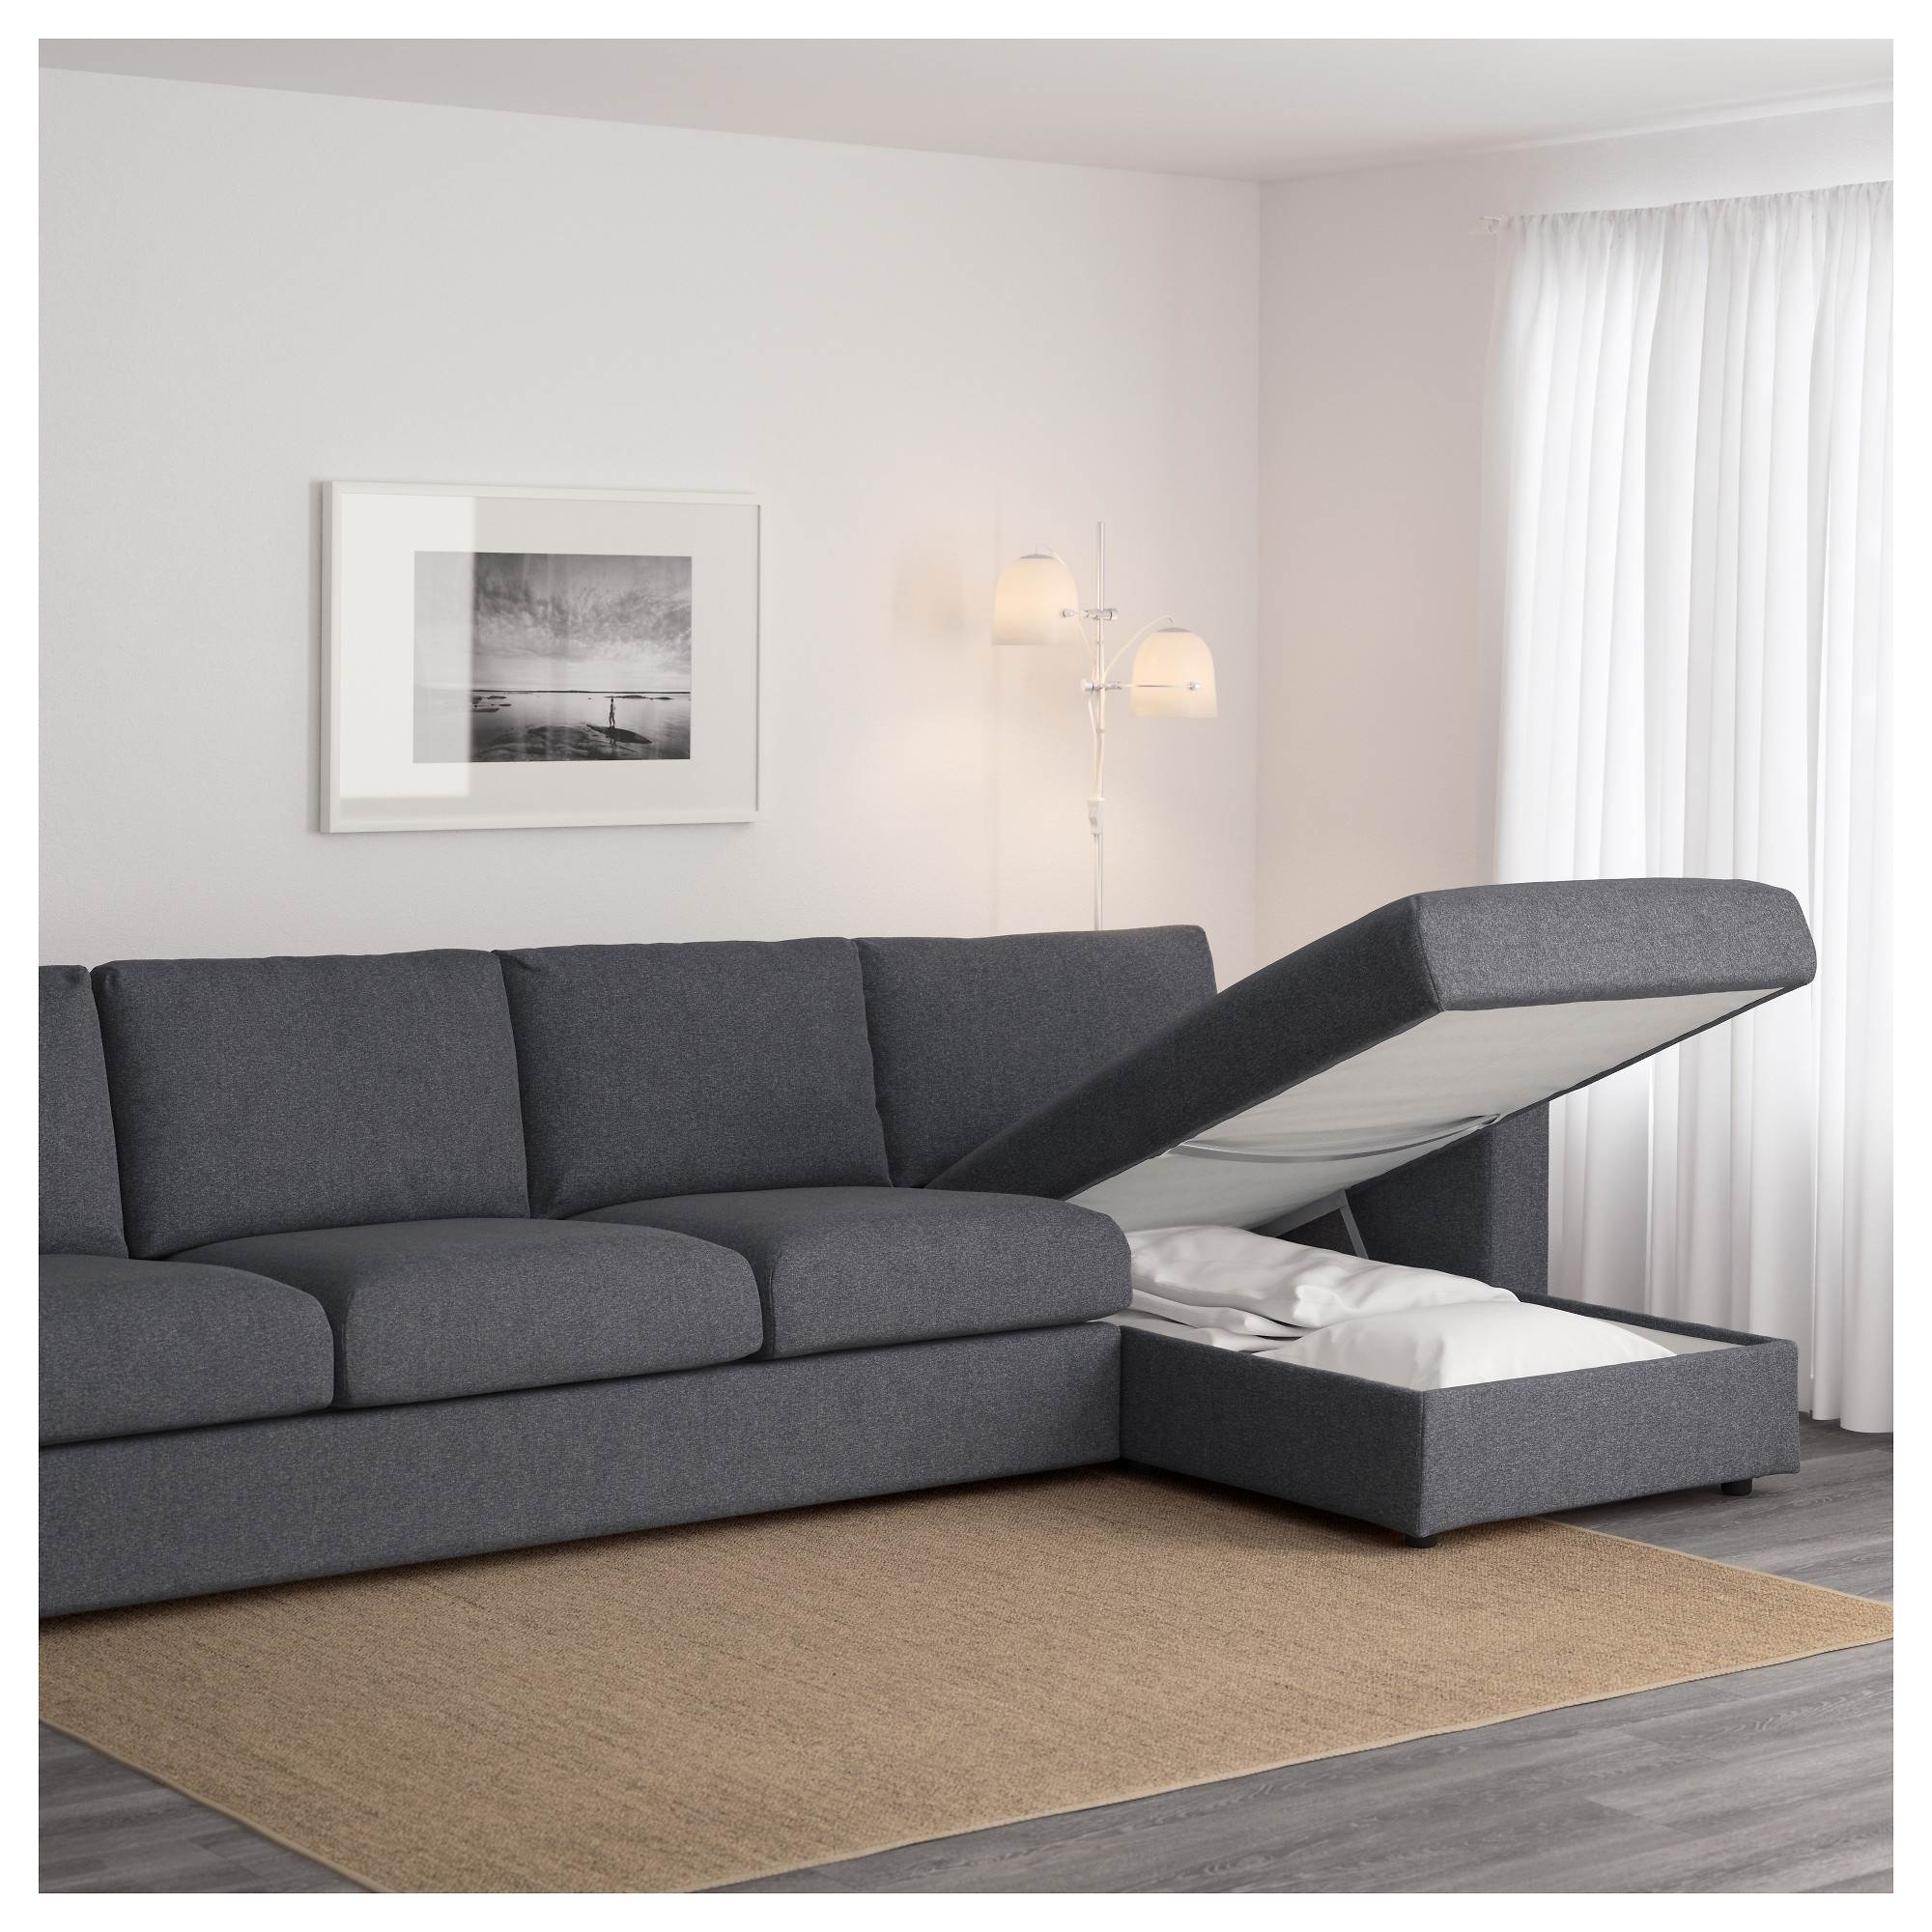 Most Popular 4 Seater Sofas Regarding Vimle 4 Seat Sofa With Chaise Longue/gunnared Medium Grey – Ikea (View 15 of 20)